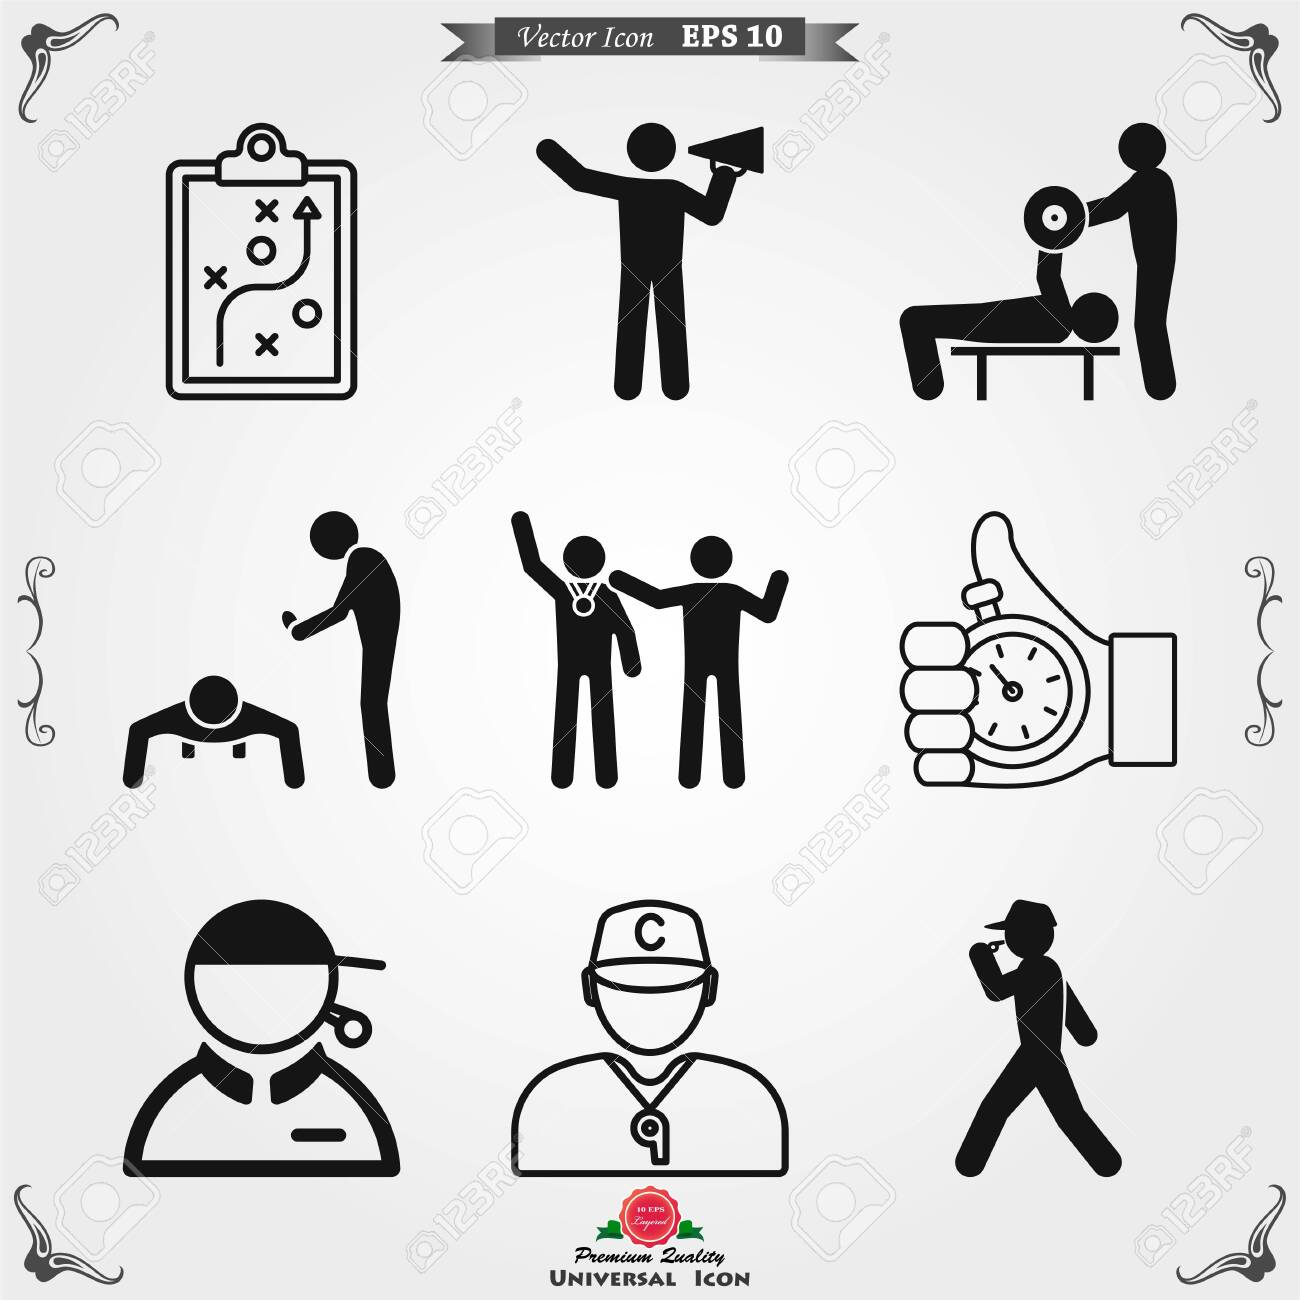 Coach icon vector, training and mentoring symbol - 124249991